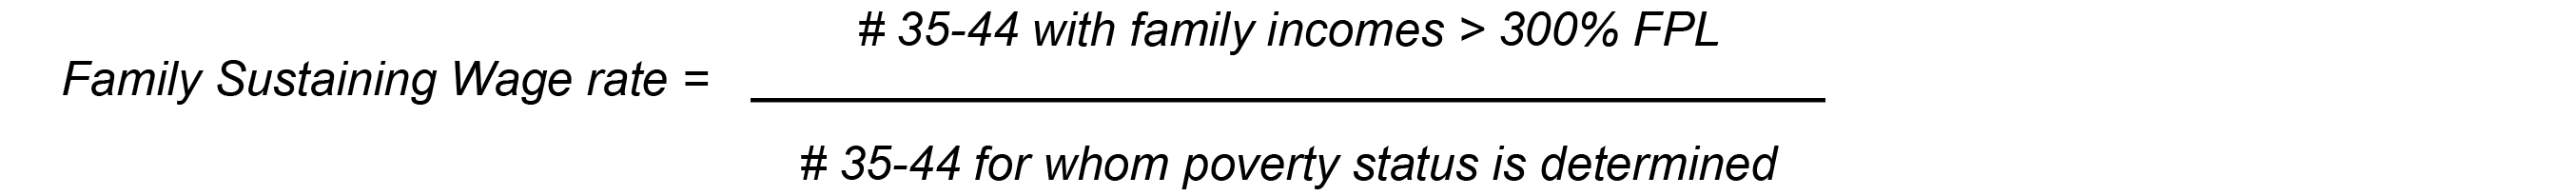 Family Sustaining Wage Rate = # 35-44 with family incomes > 300% FPL / # 35 -44 for whom poverty status is determined